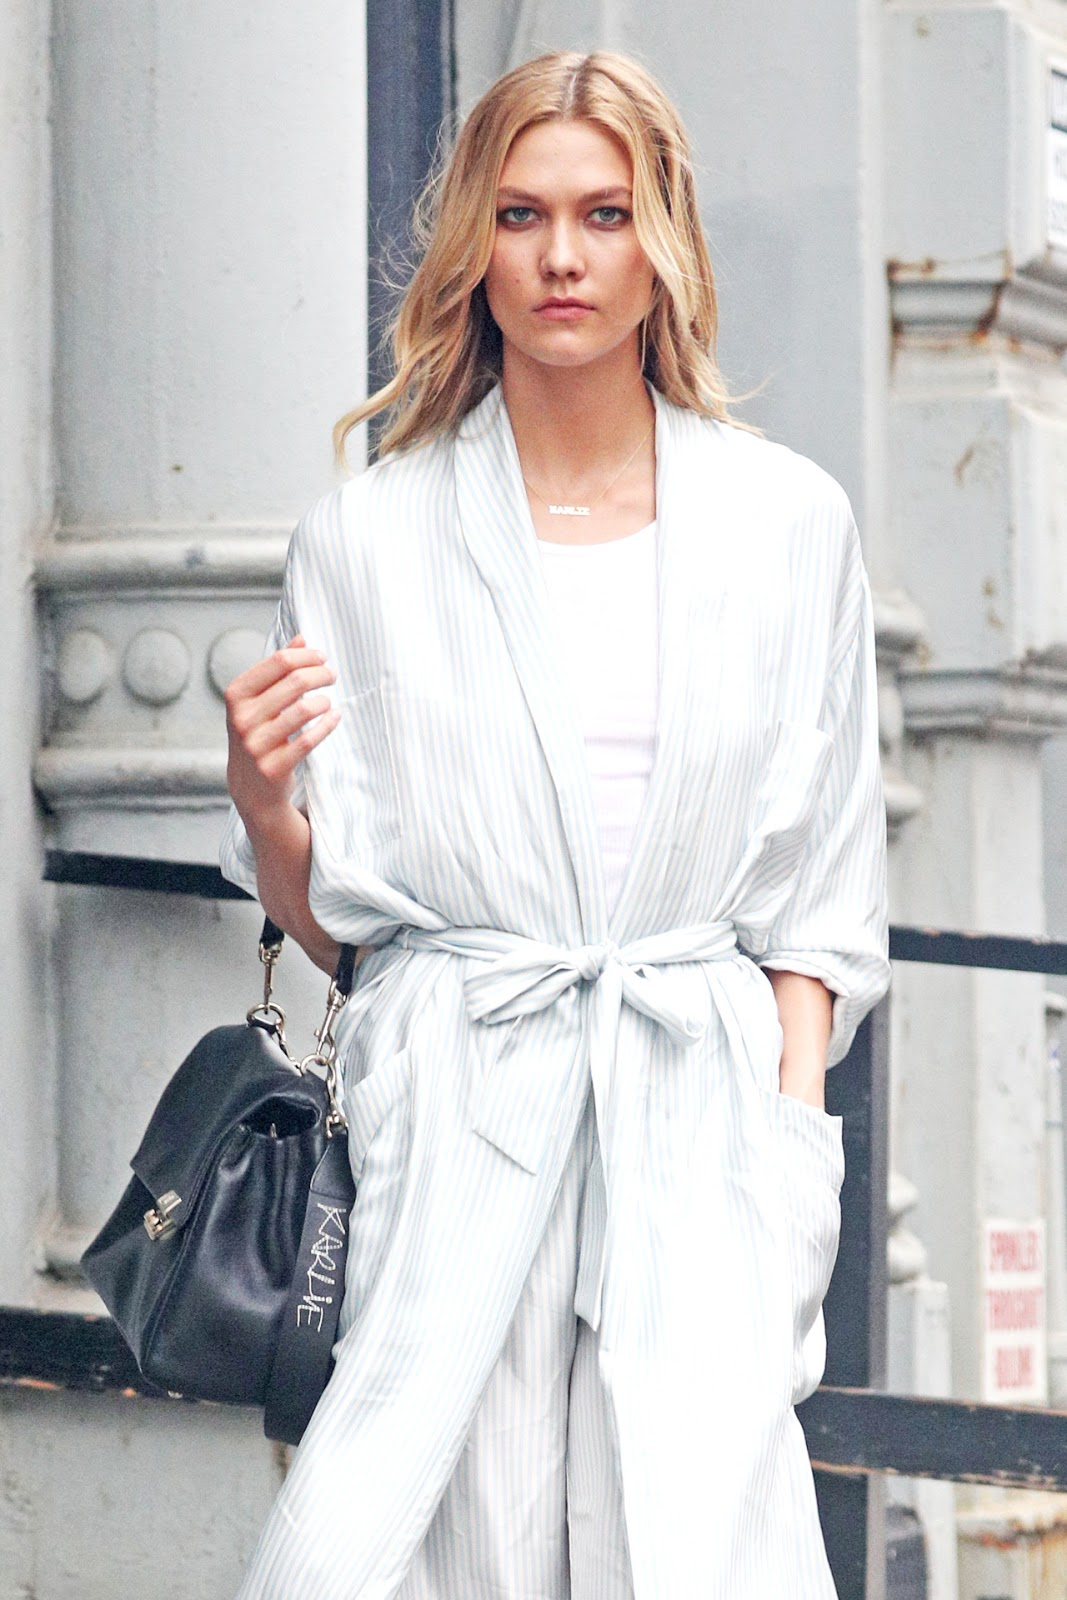 Karlie Kloss Wows in Pale Pinstripes Out in NYC